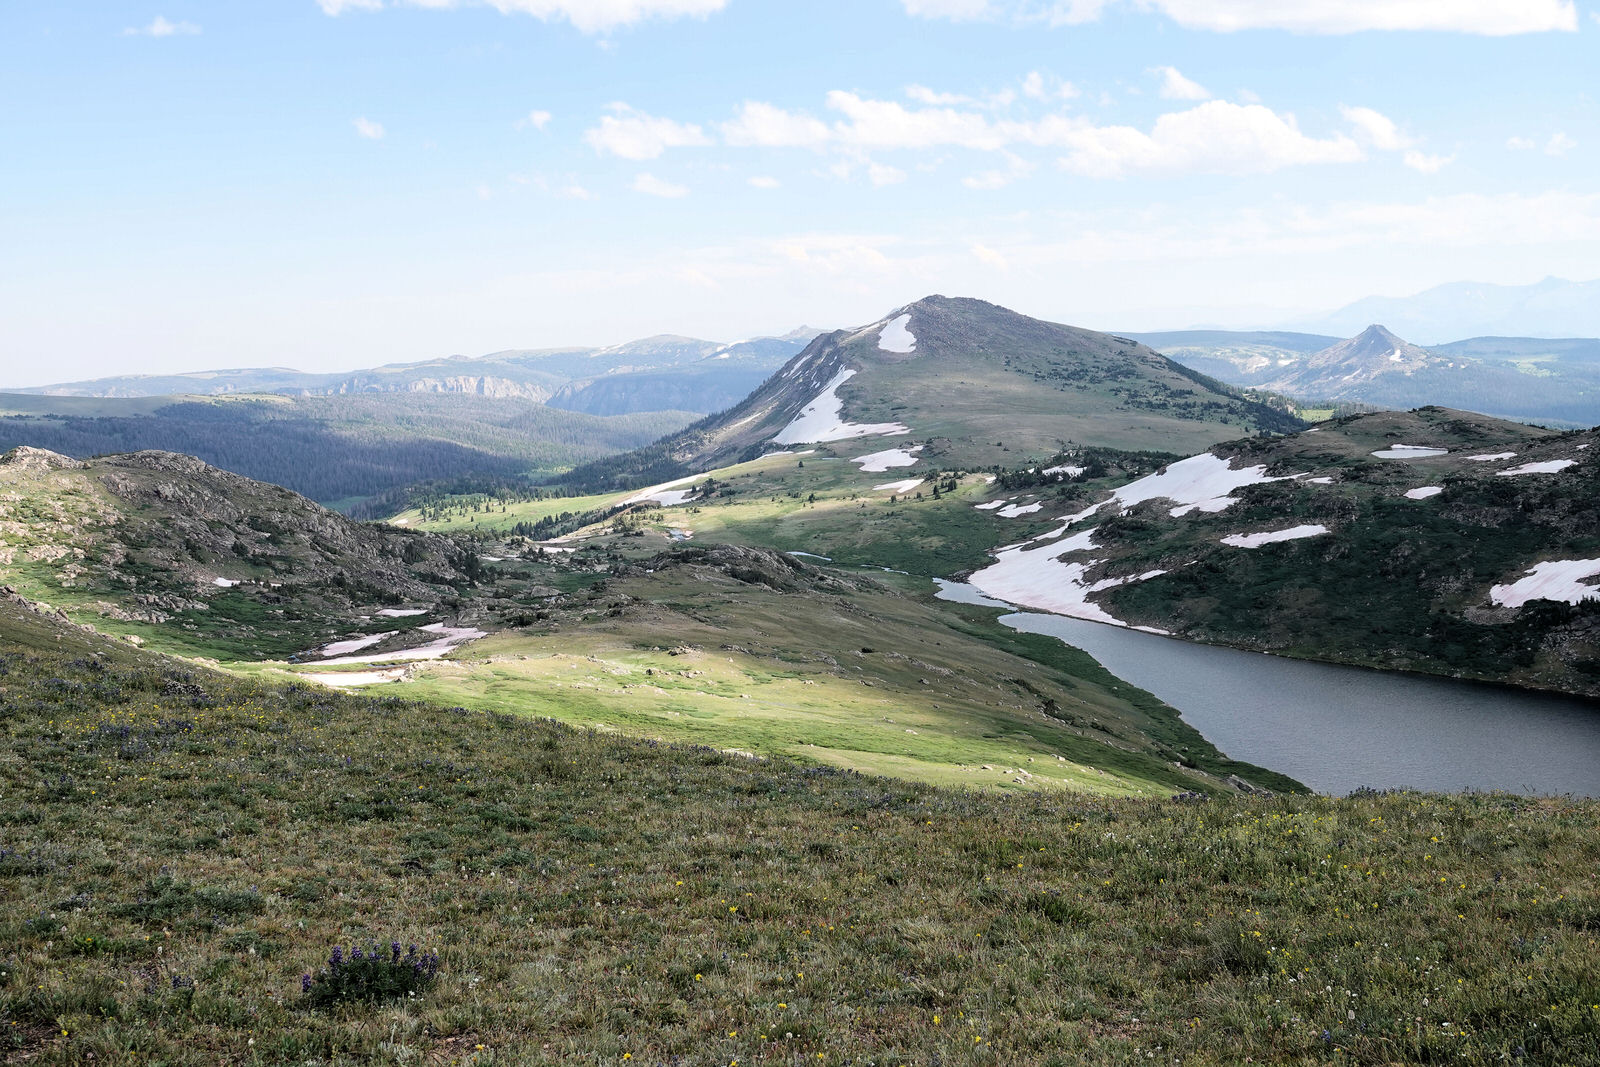 photo: Beartooth Loop - view from near the trailhead on the Beartooth Highway - 7-19-18. Photo by Jim Walla.